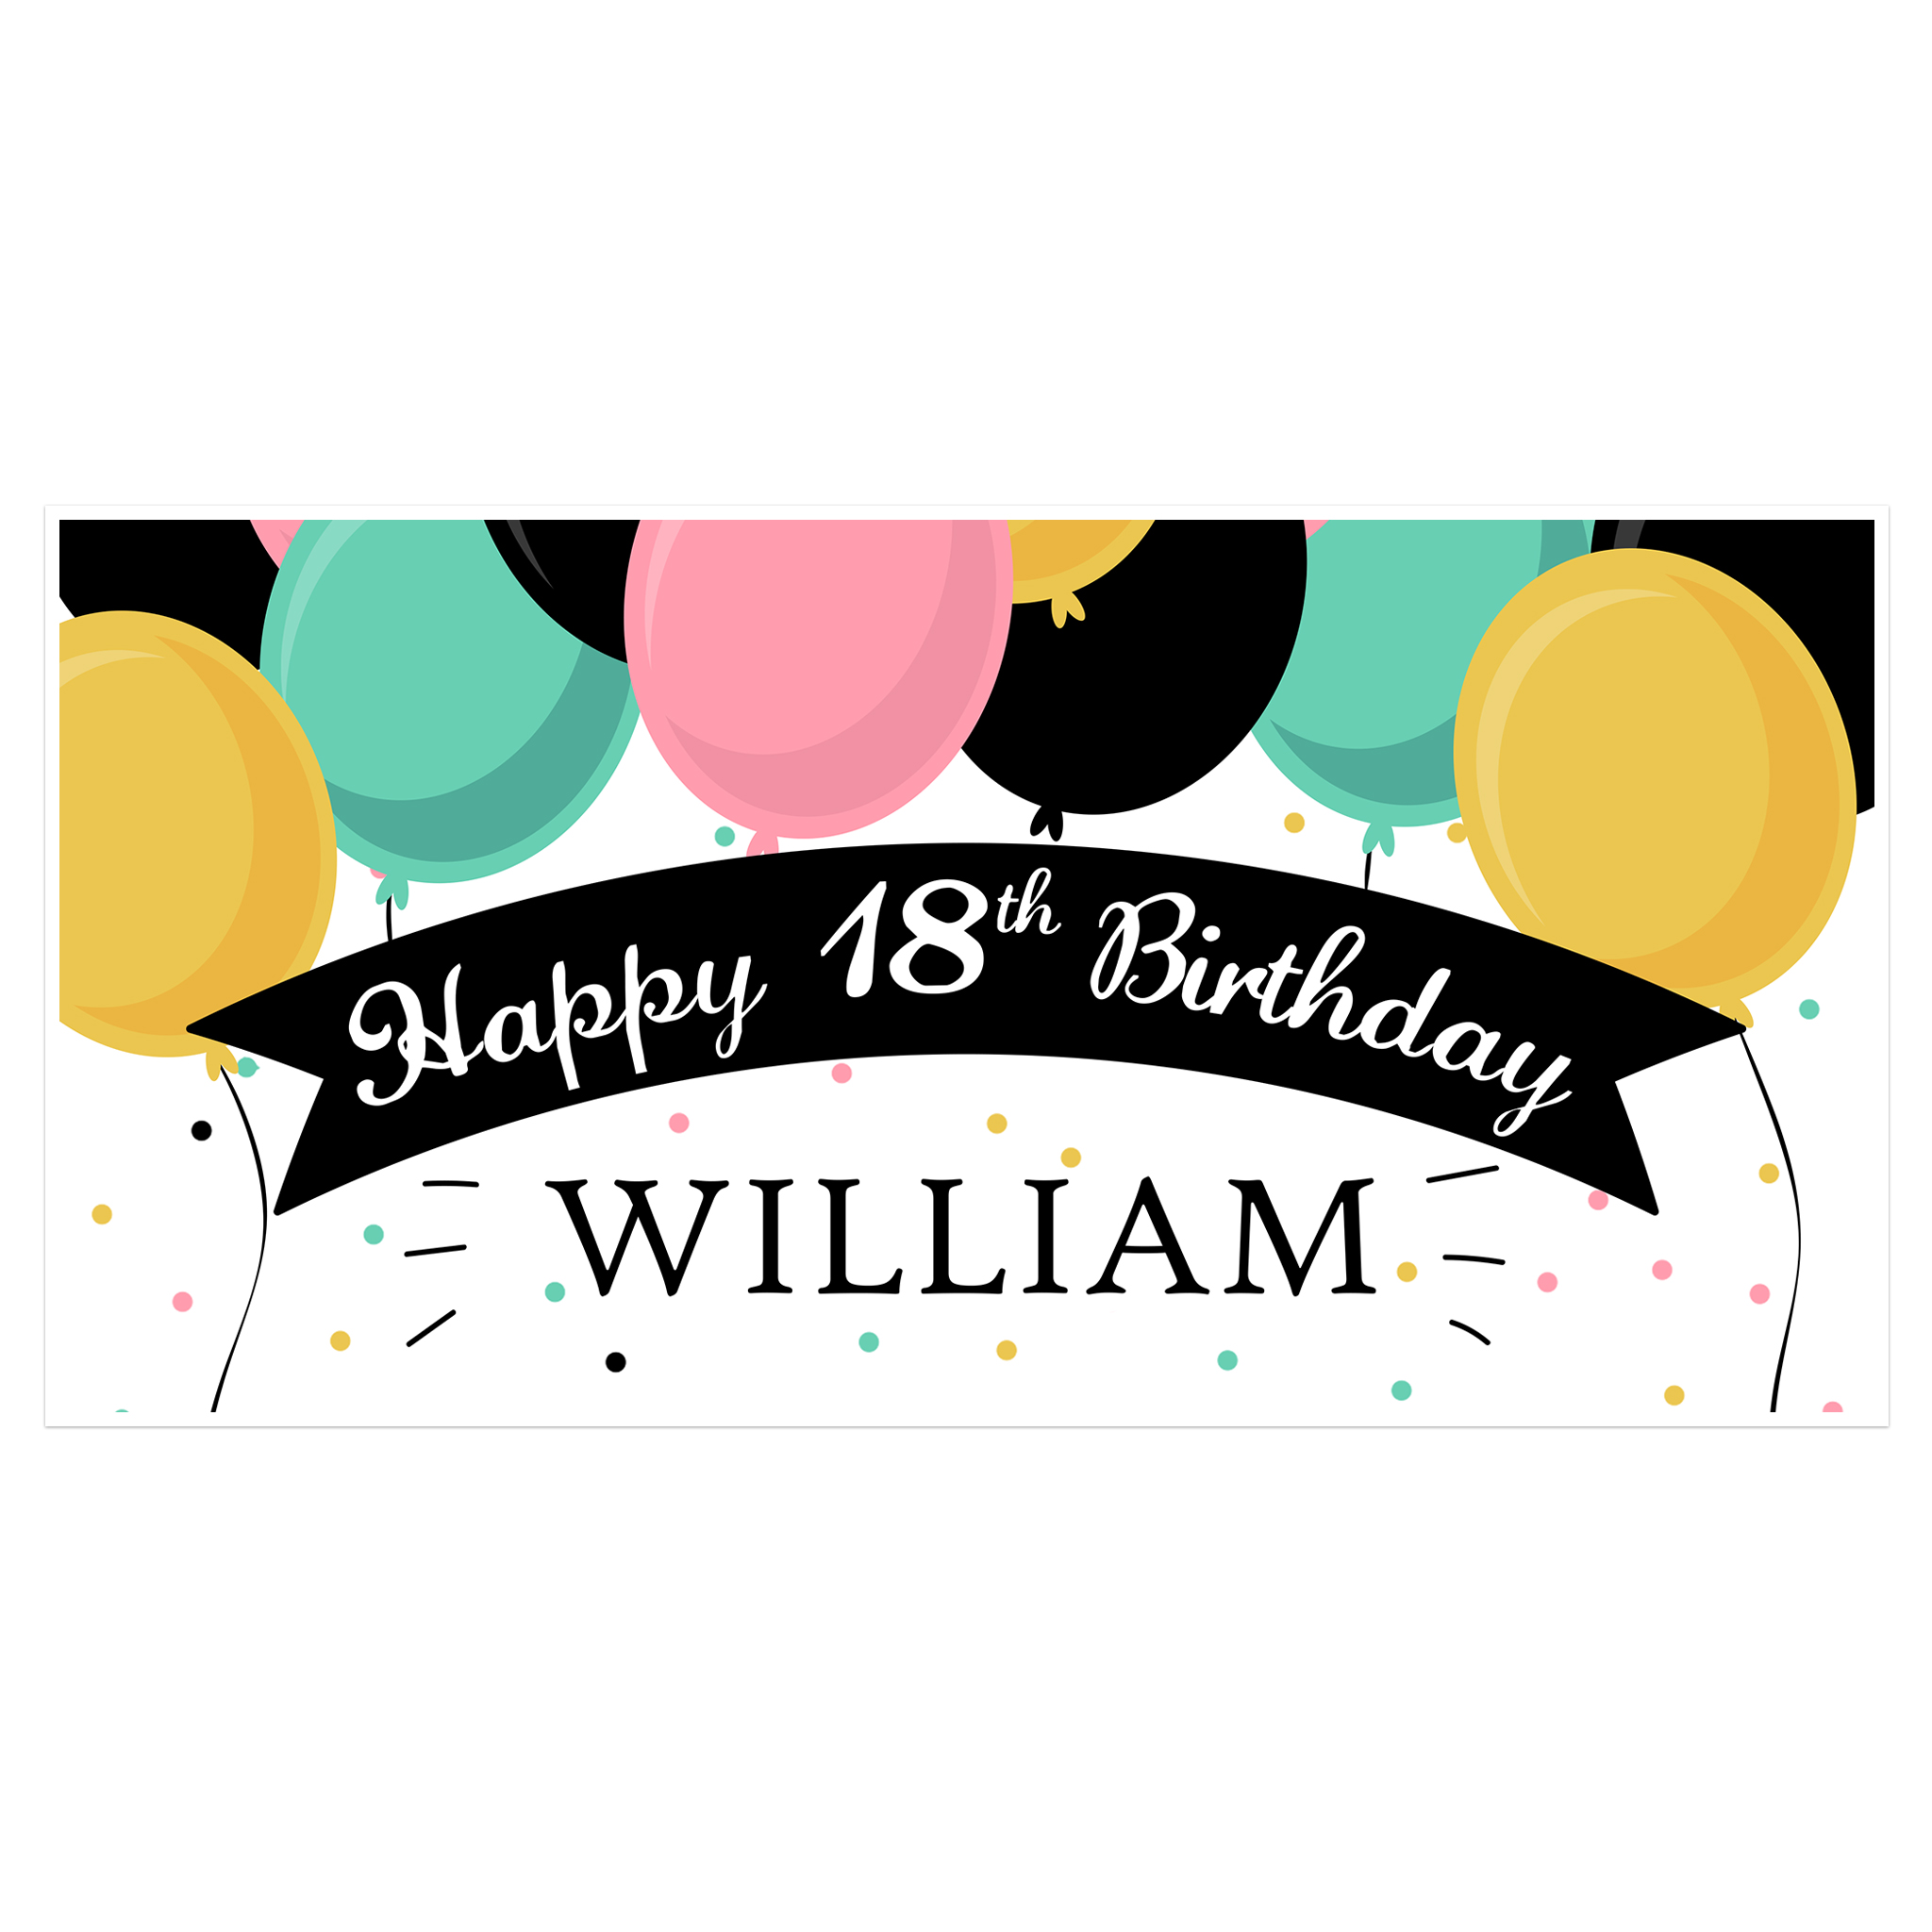 18th birthday banners personalized ; 18th-birthday-banner-05